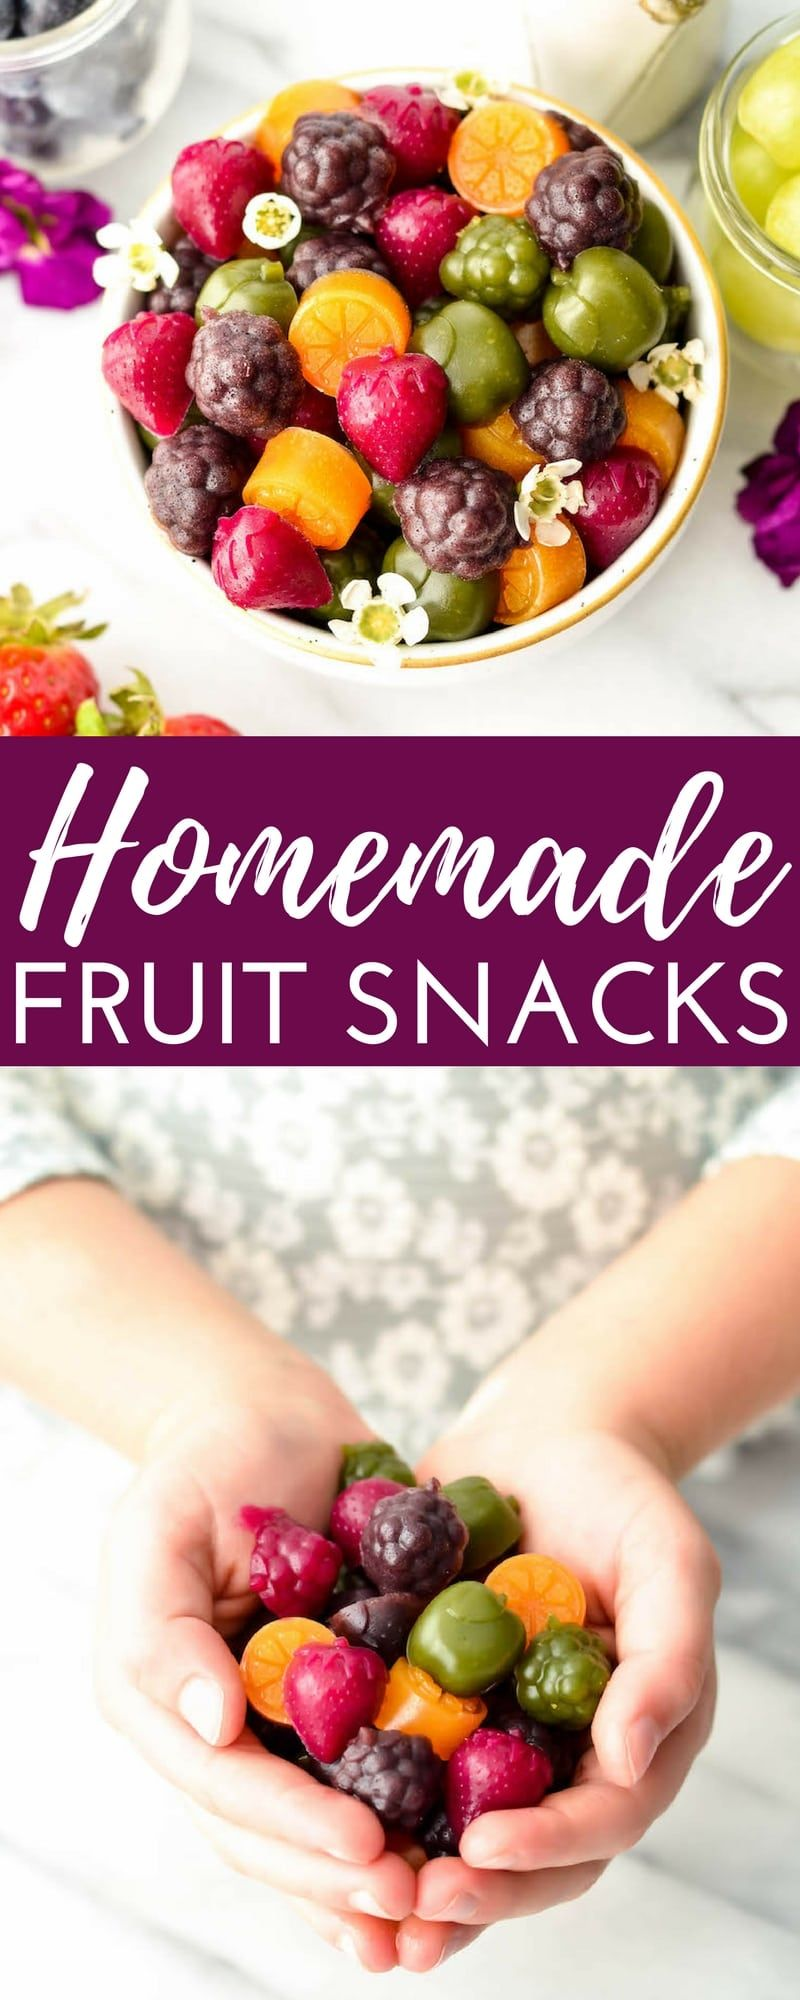 Homemade Fruit Snacks Recipe Made With Whole Fruits Vegetables